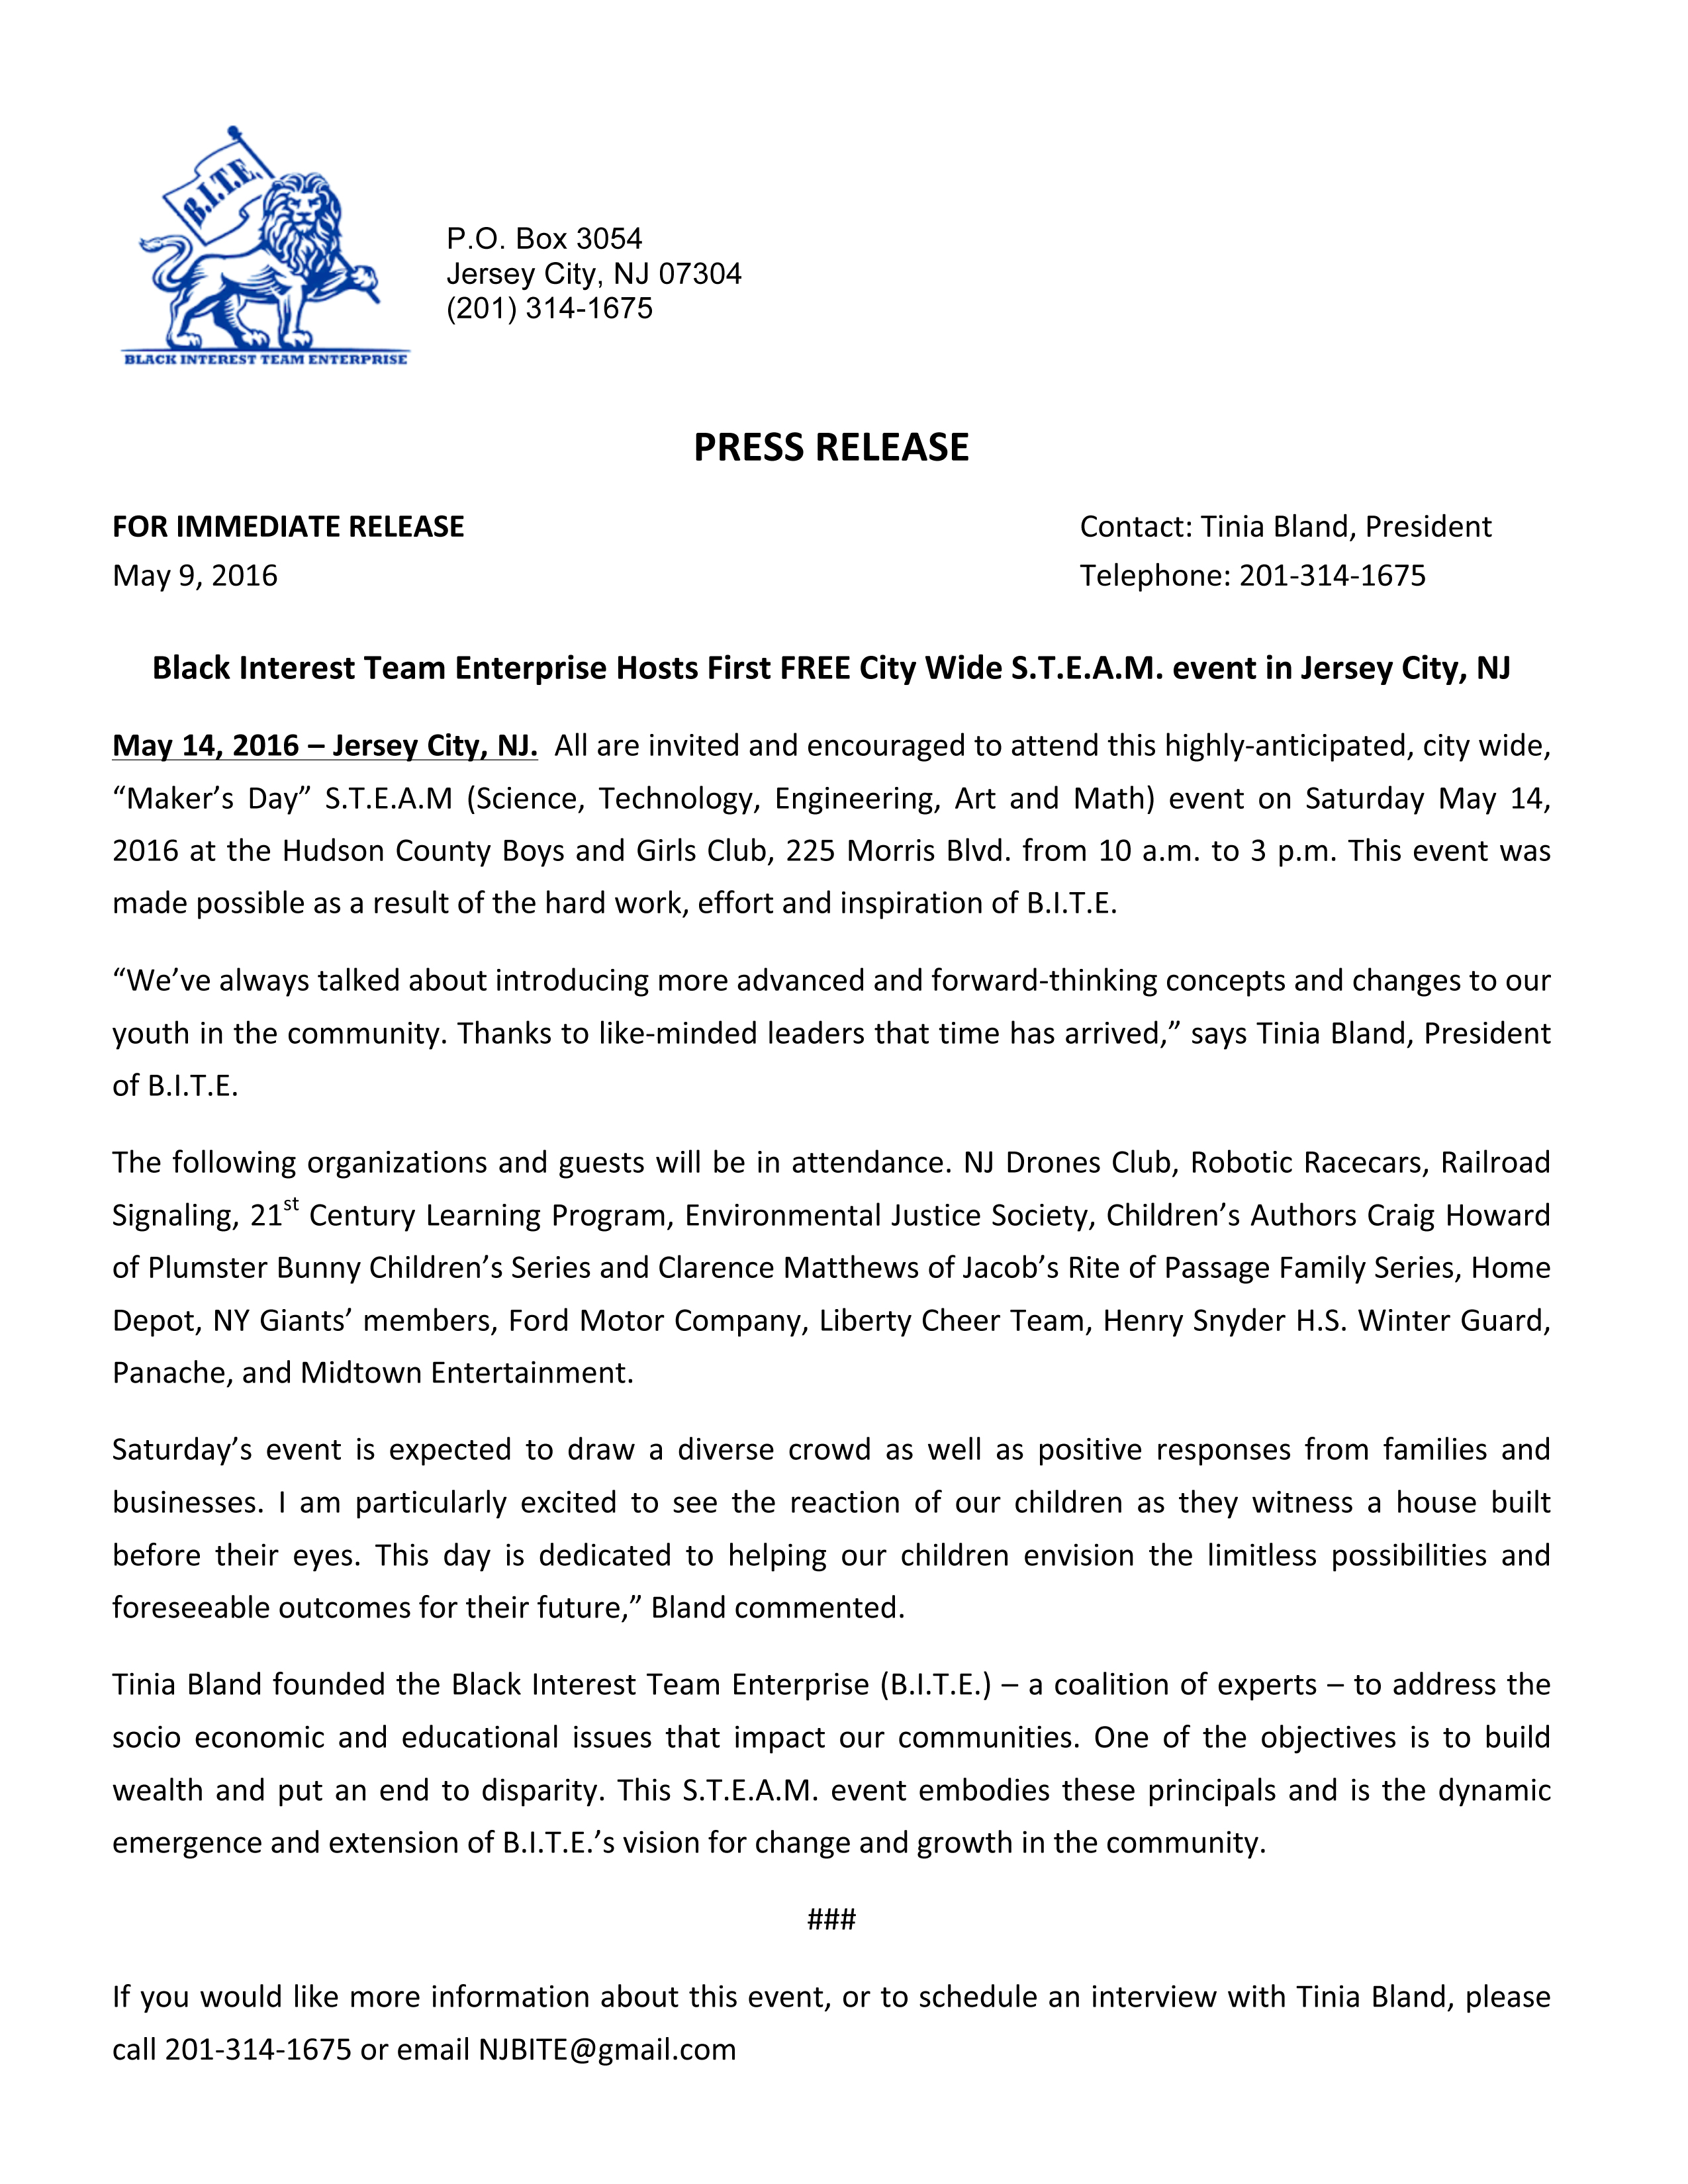 pressrelease revised